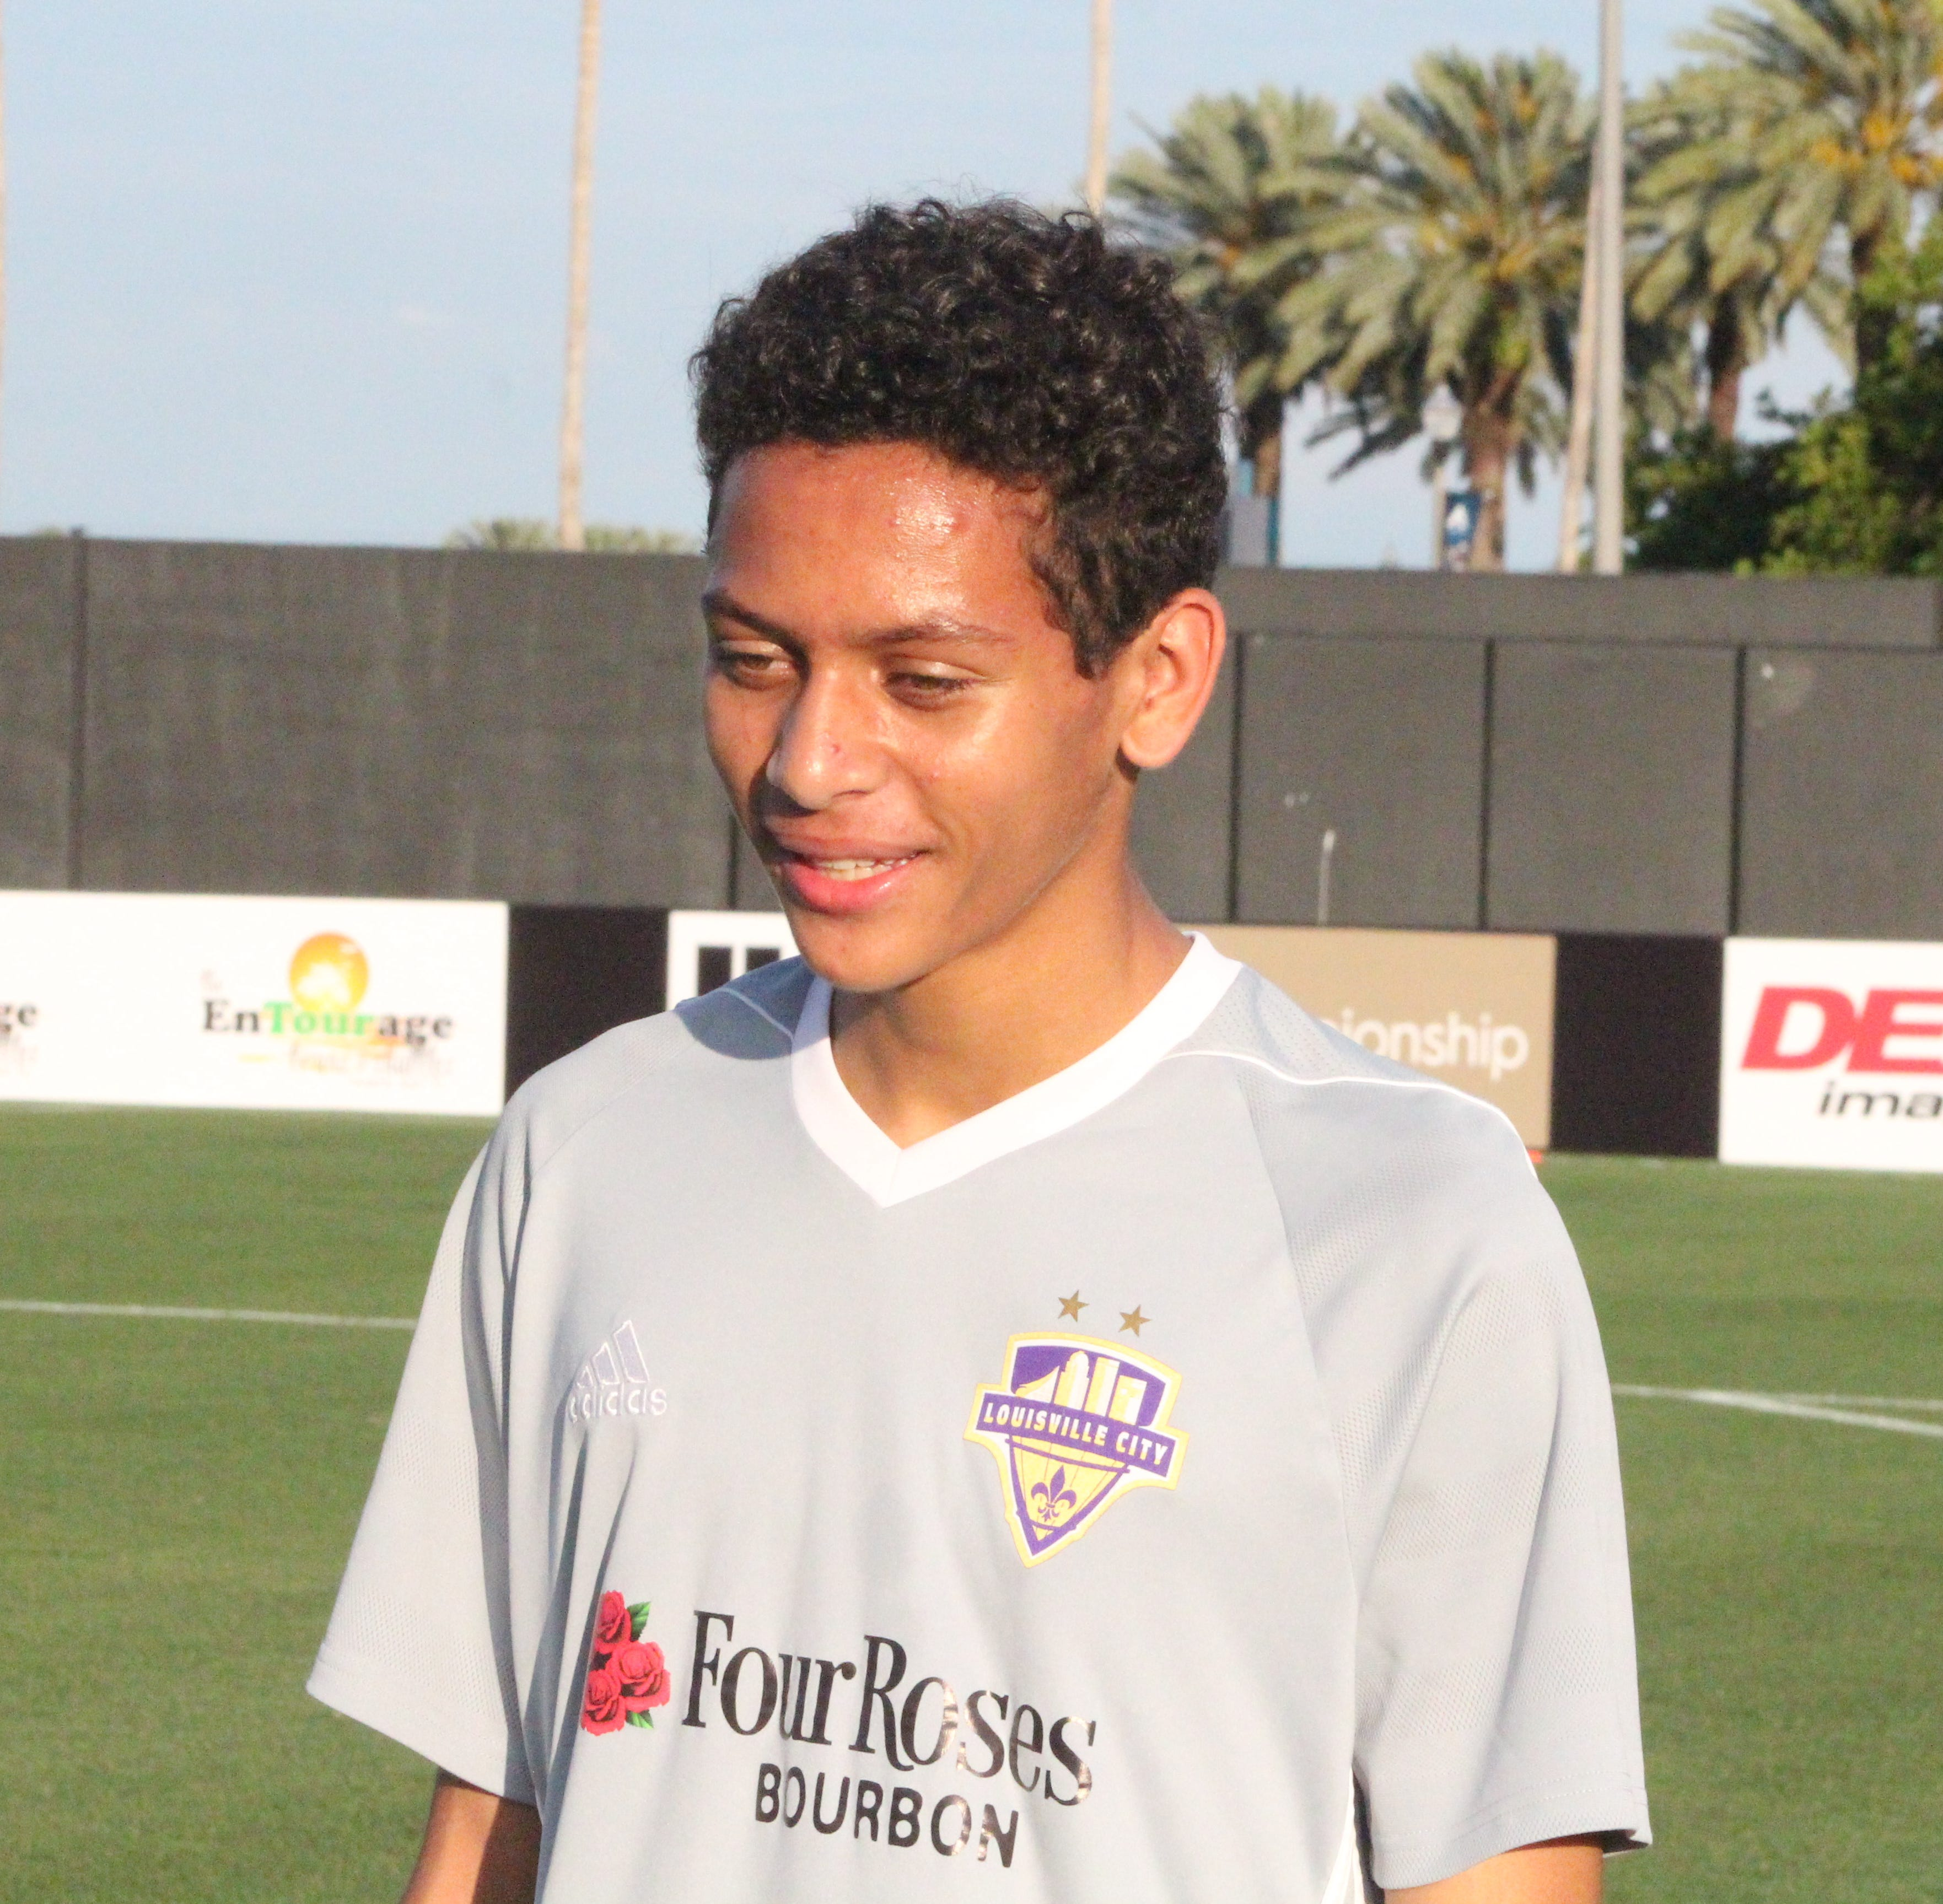 Elijah Wynder, 16, says he'll be ready for first game opportunity with Louisville City